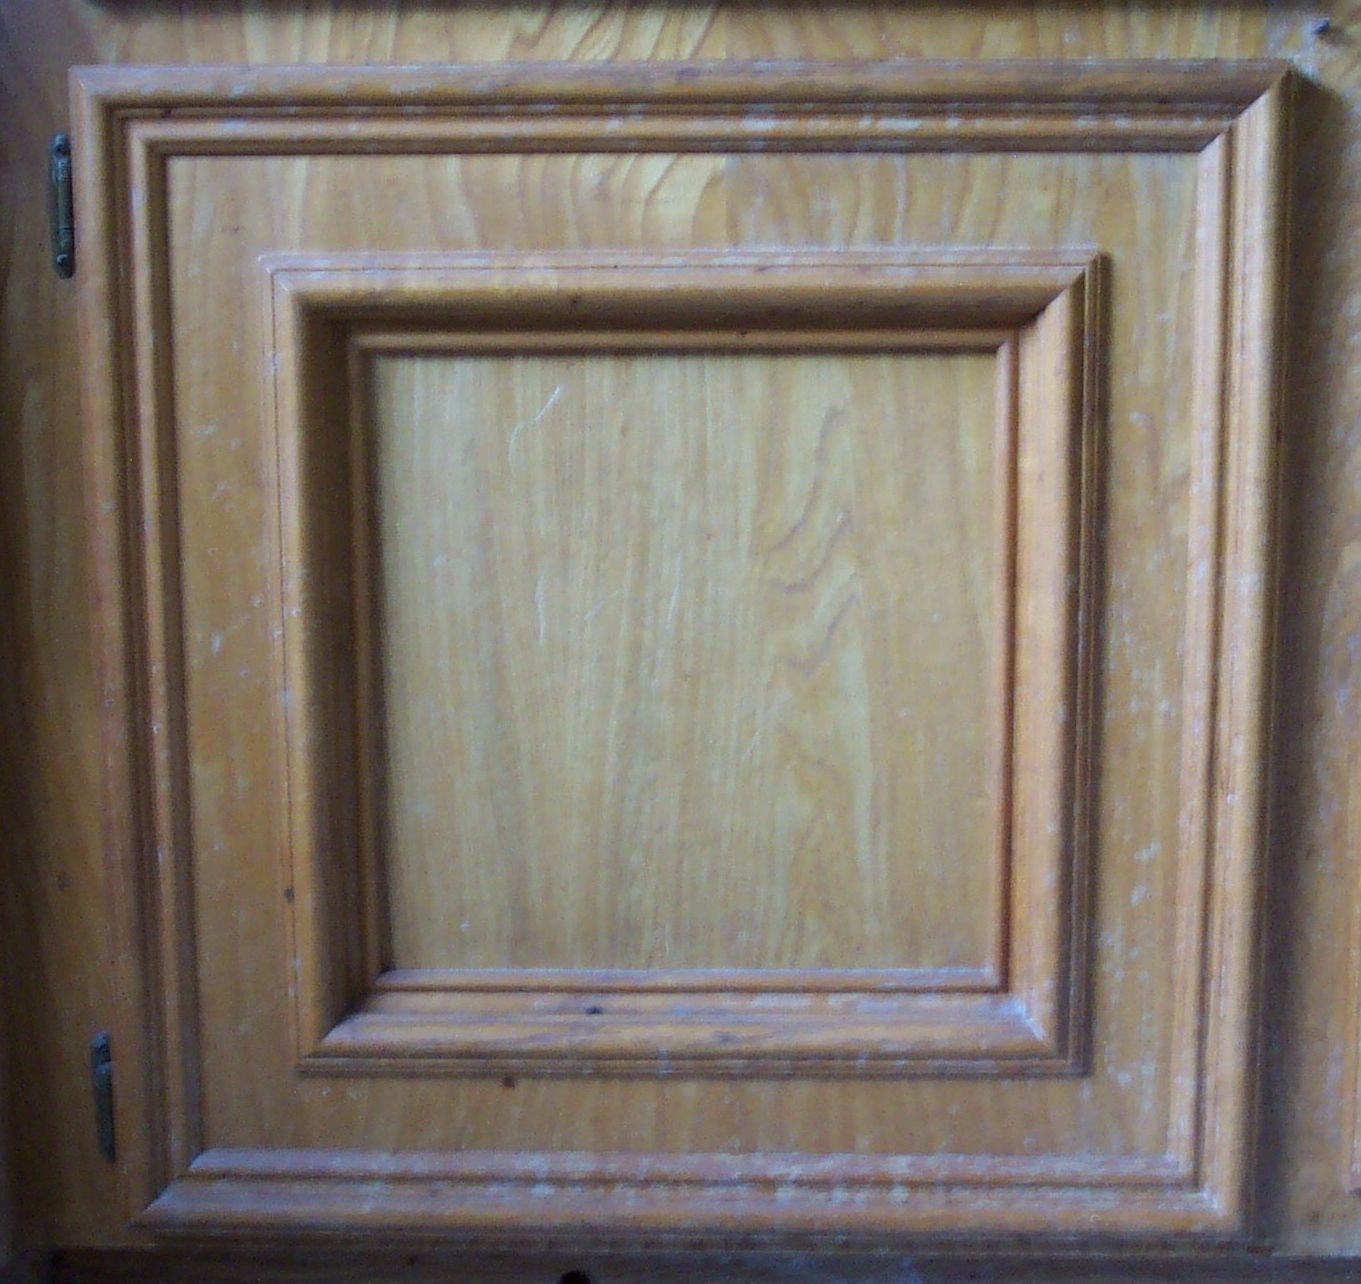 Kitchen Molding Adding Trim To Existing Plain Kitchen Cabinet Doors This Is My